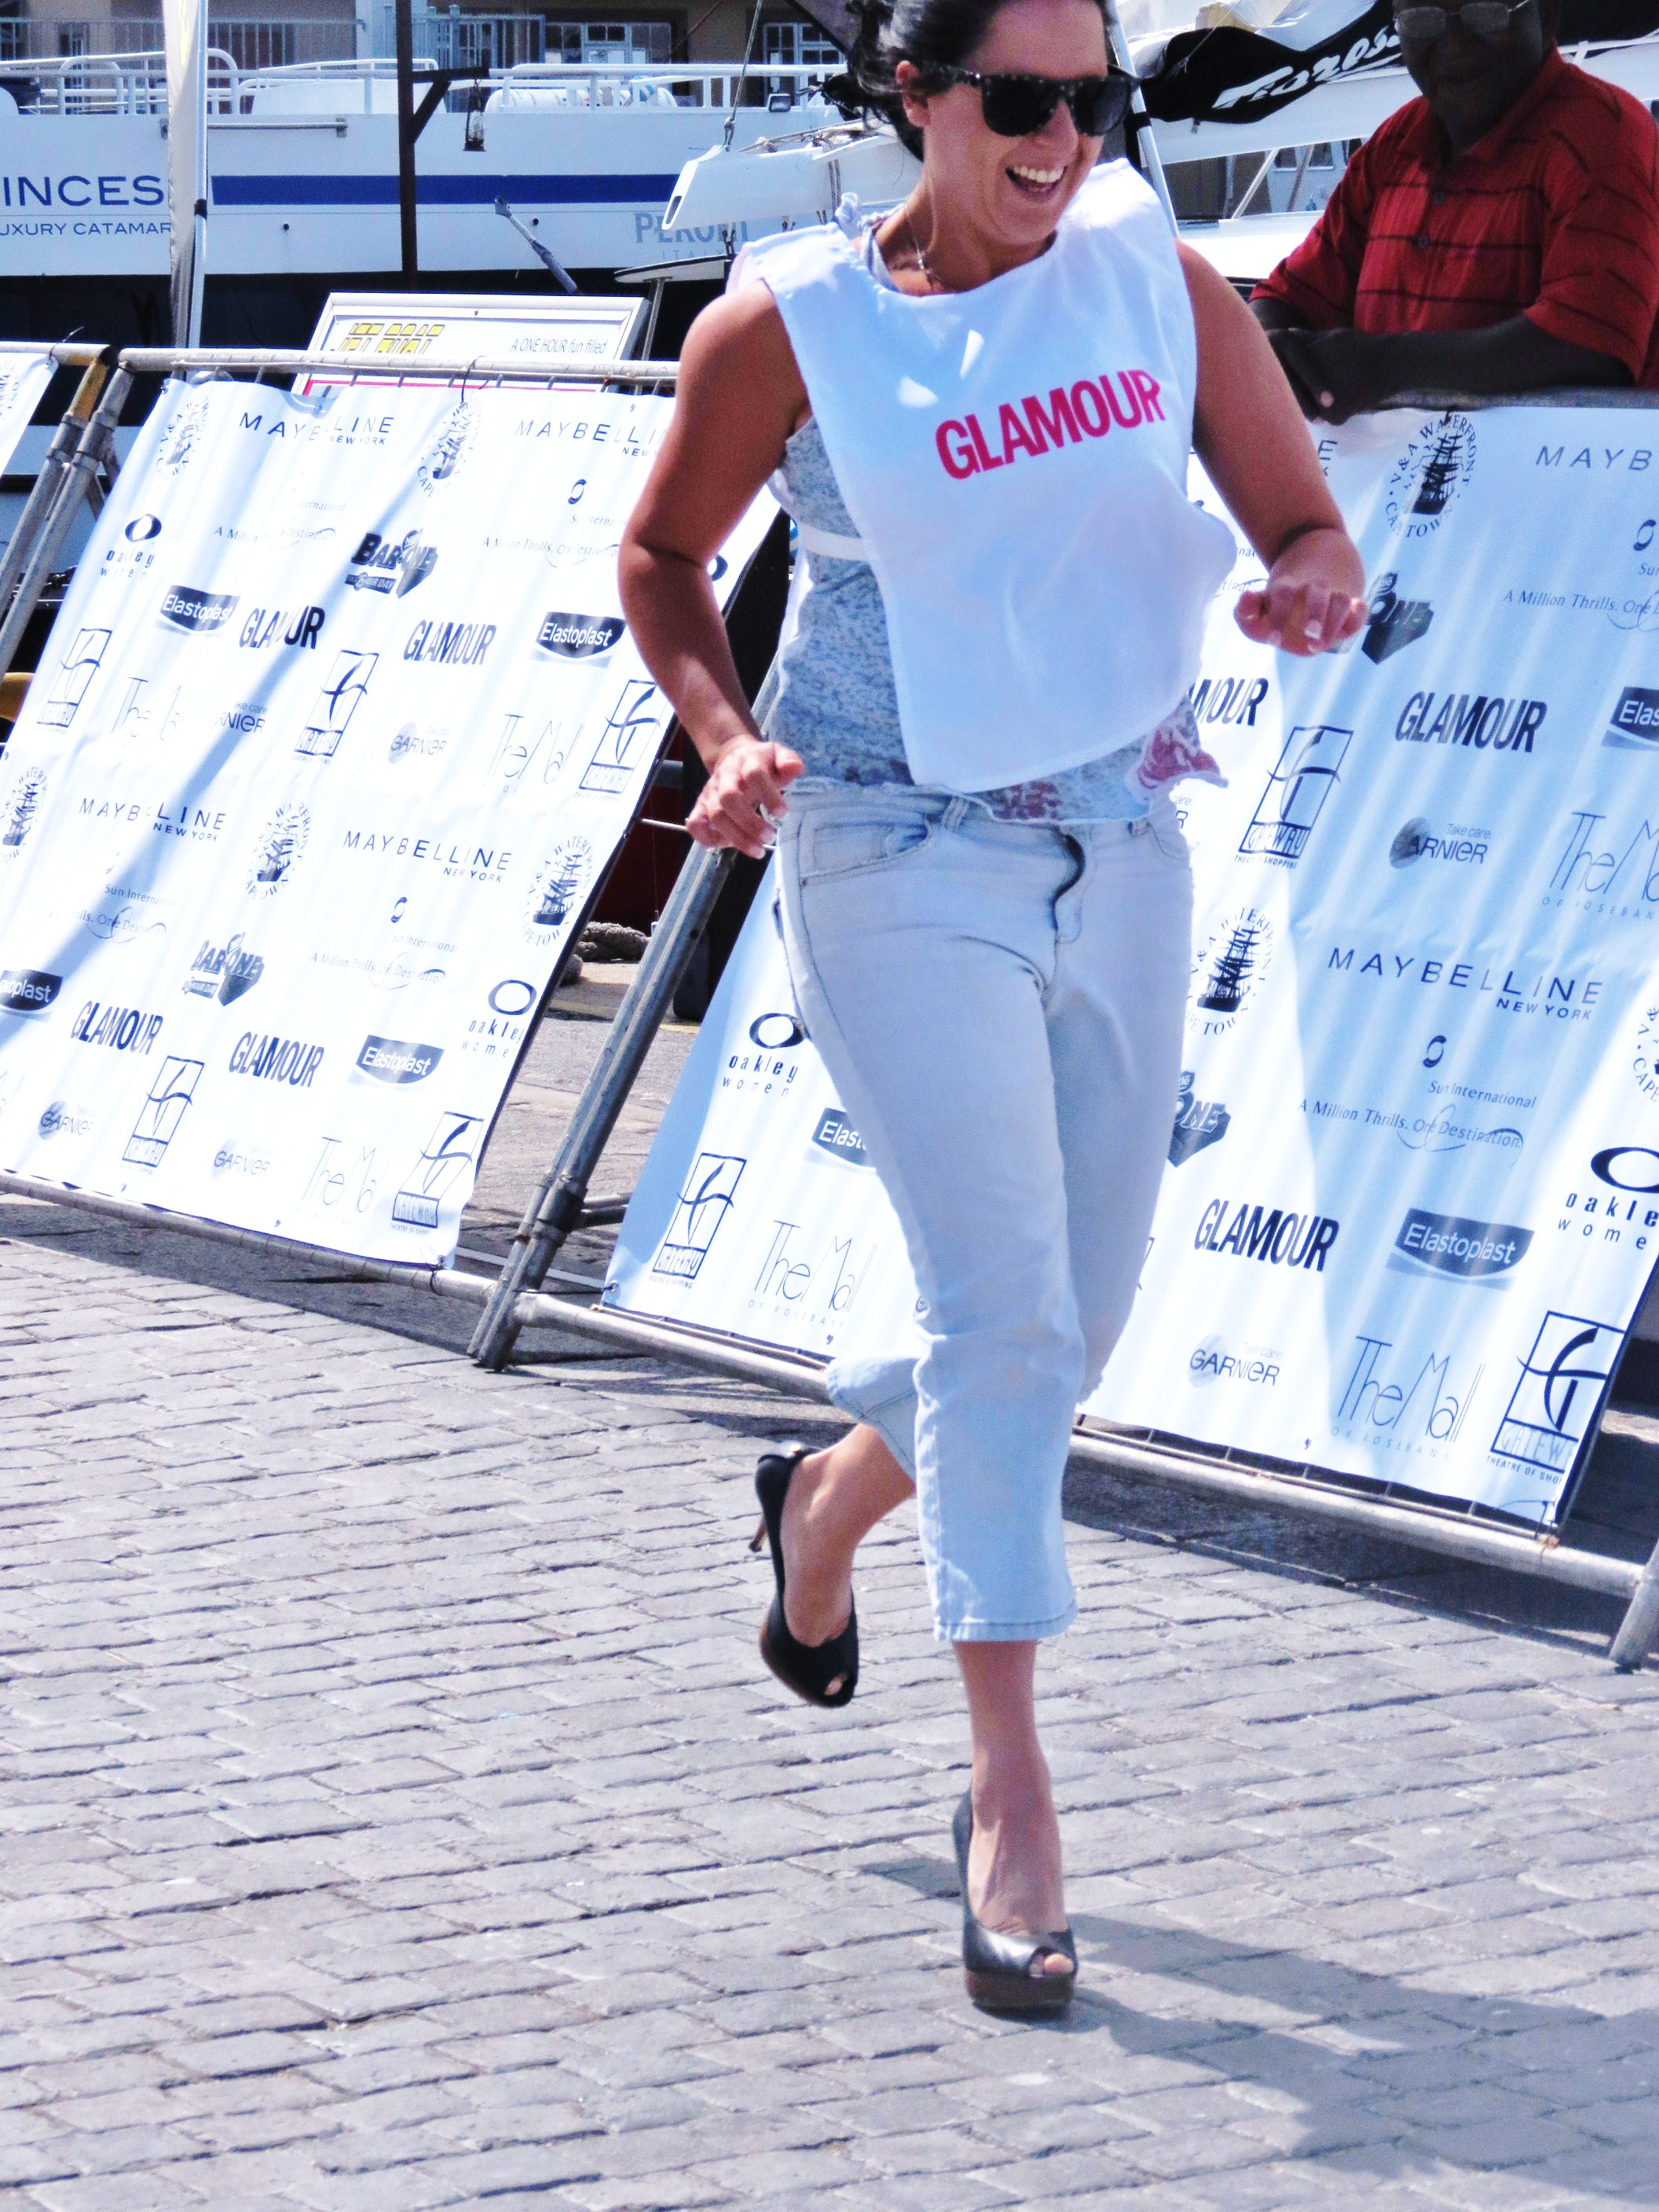 Glamour Stiletto Run 2012